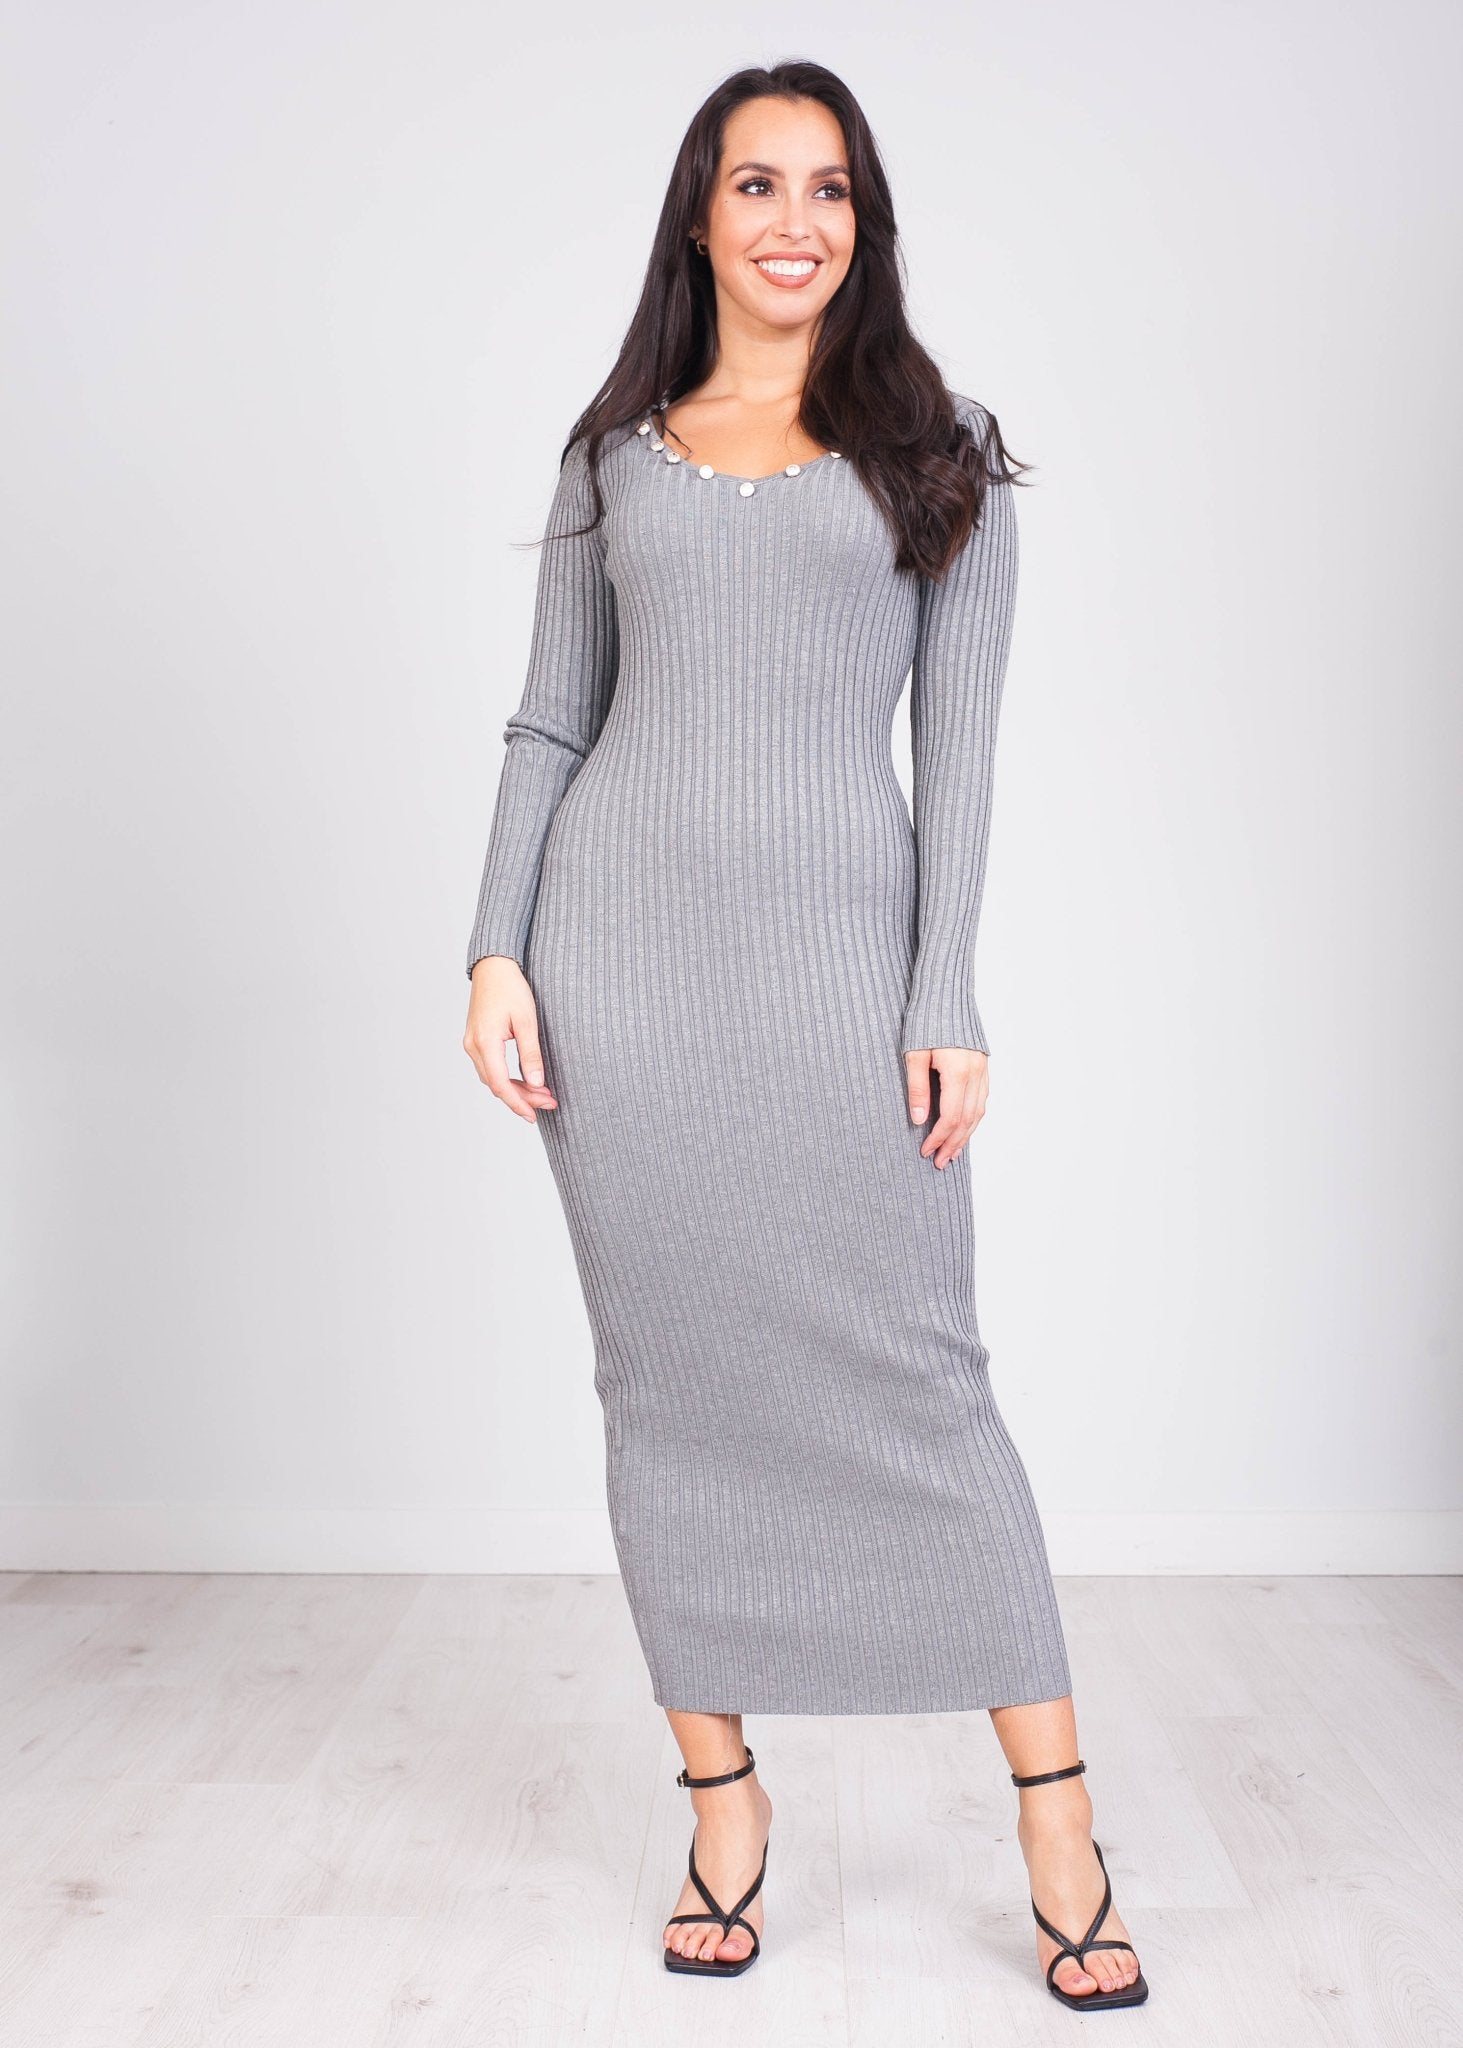 Priya Grey V-Neck Knit Dress - The Walk in Wardrobe